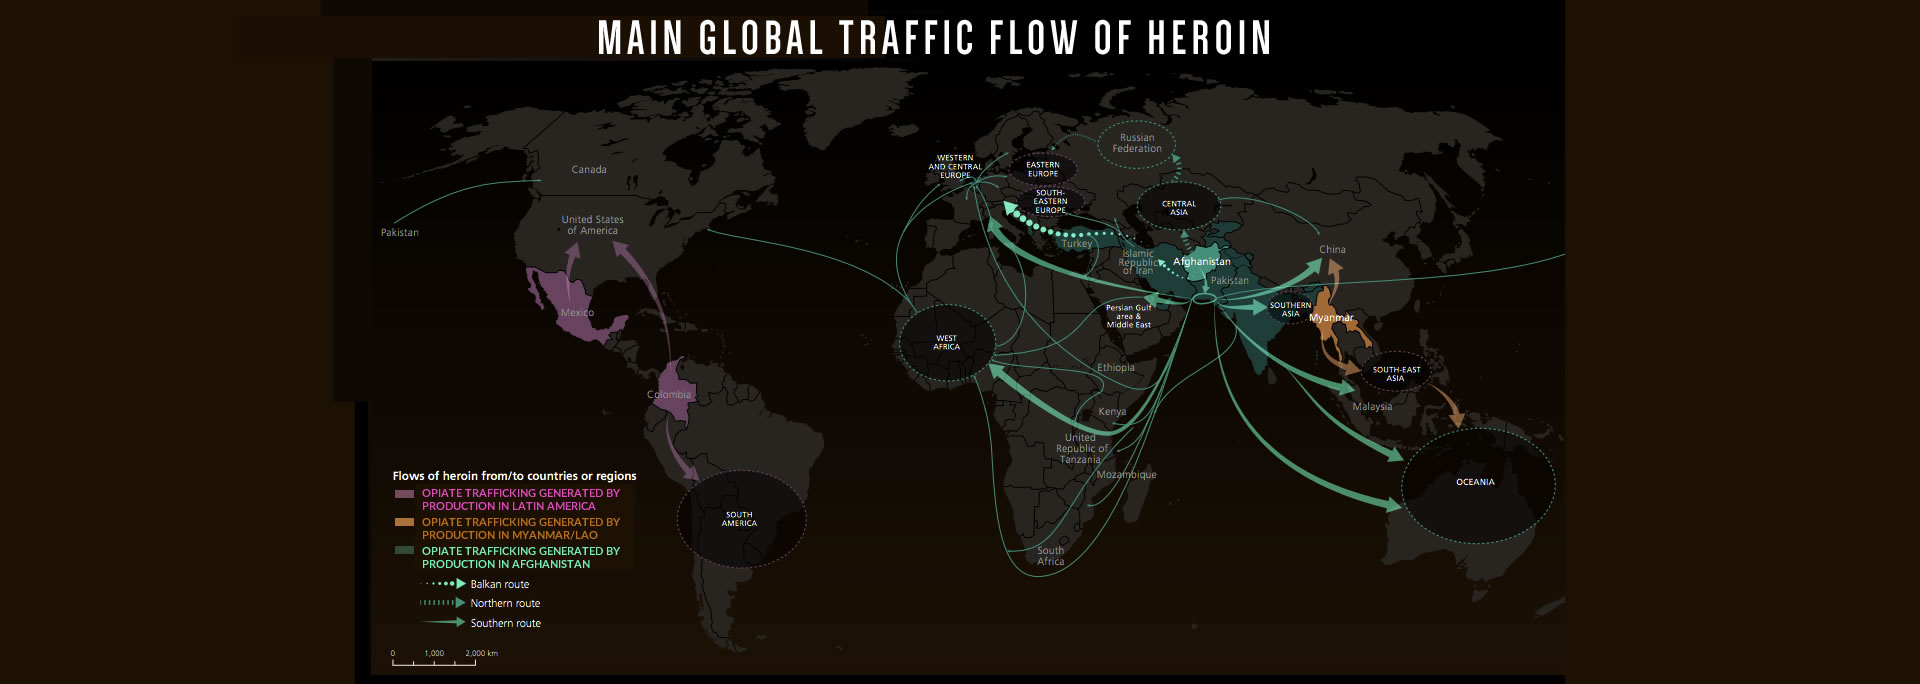 global-trafficking-flow-opiates1920